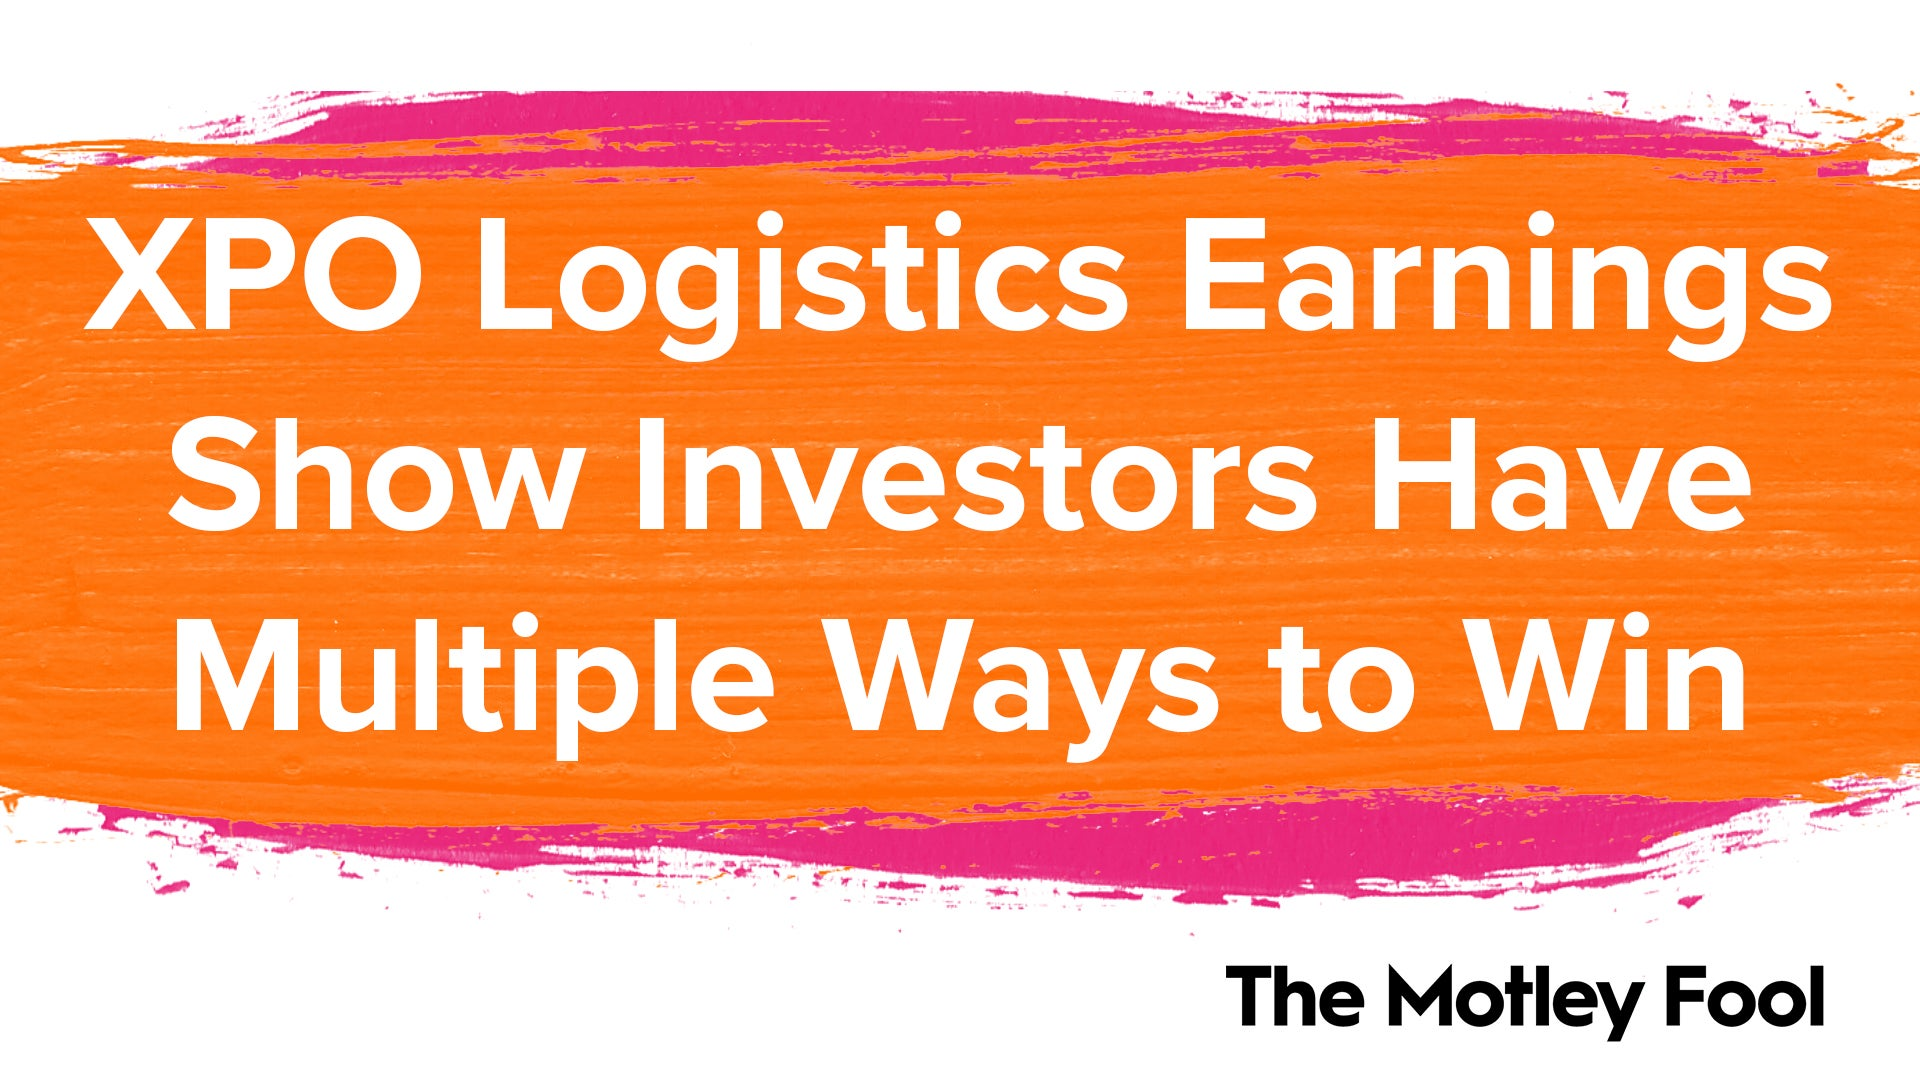 XPO Logistics Earnings Show Investors Have Multiple Ways to Win